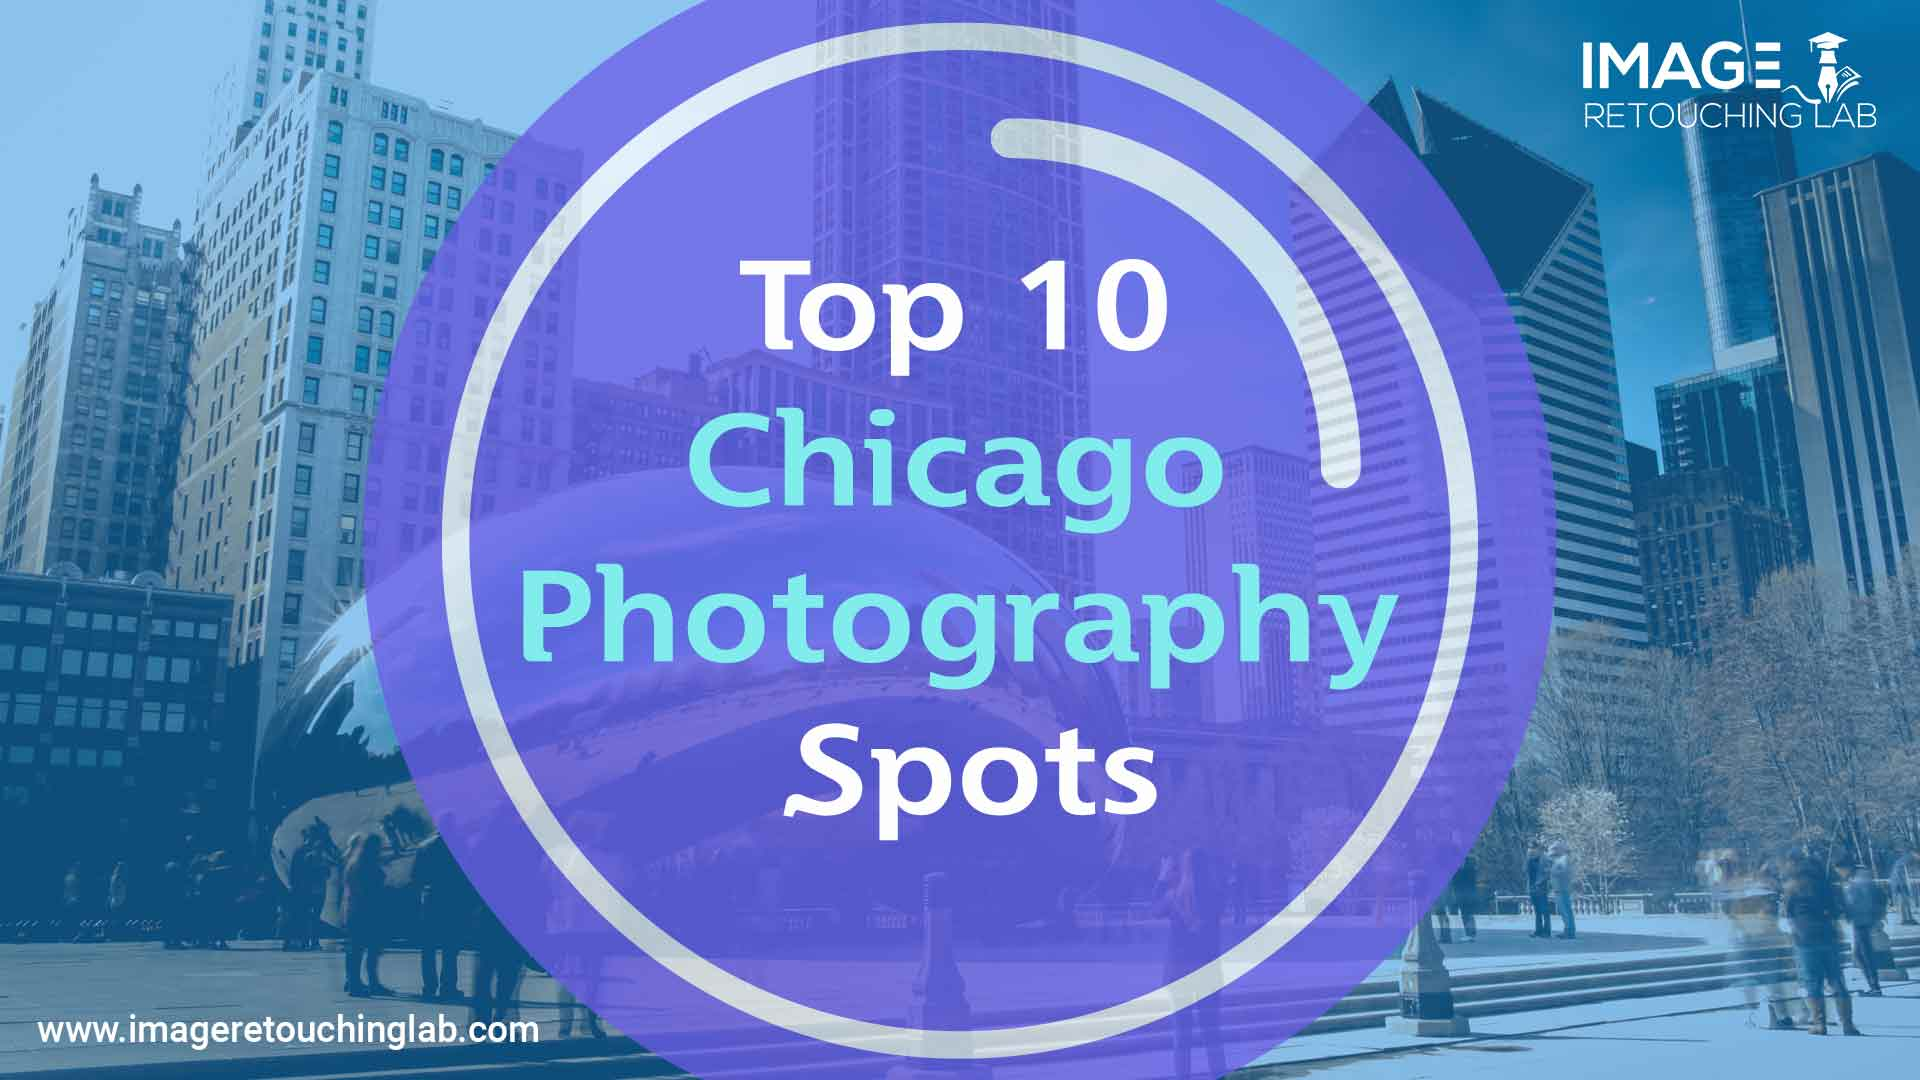 Top 10 Chicago Photography Spots